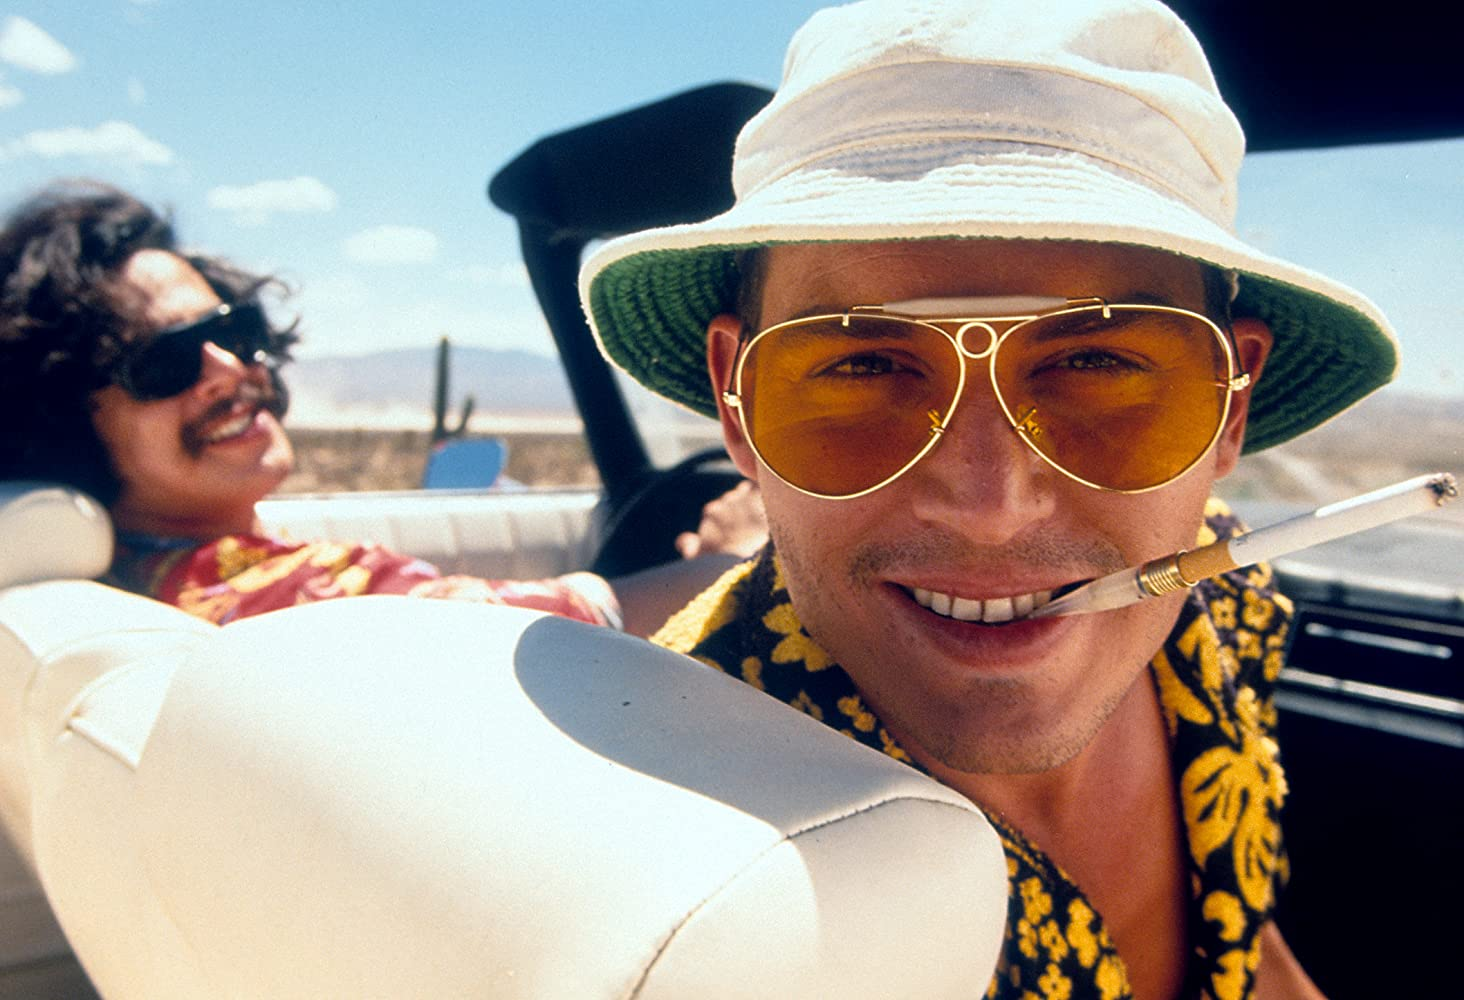 Johnny Depp and Benicio Del Toro in Fear and Loathing in Las Vegas (1998)